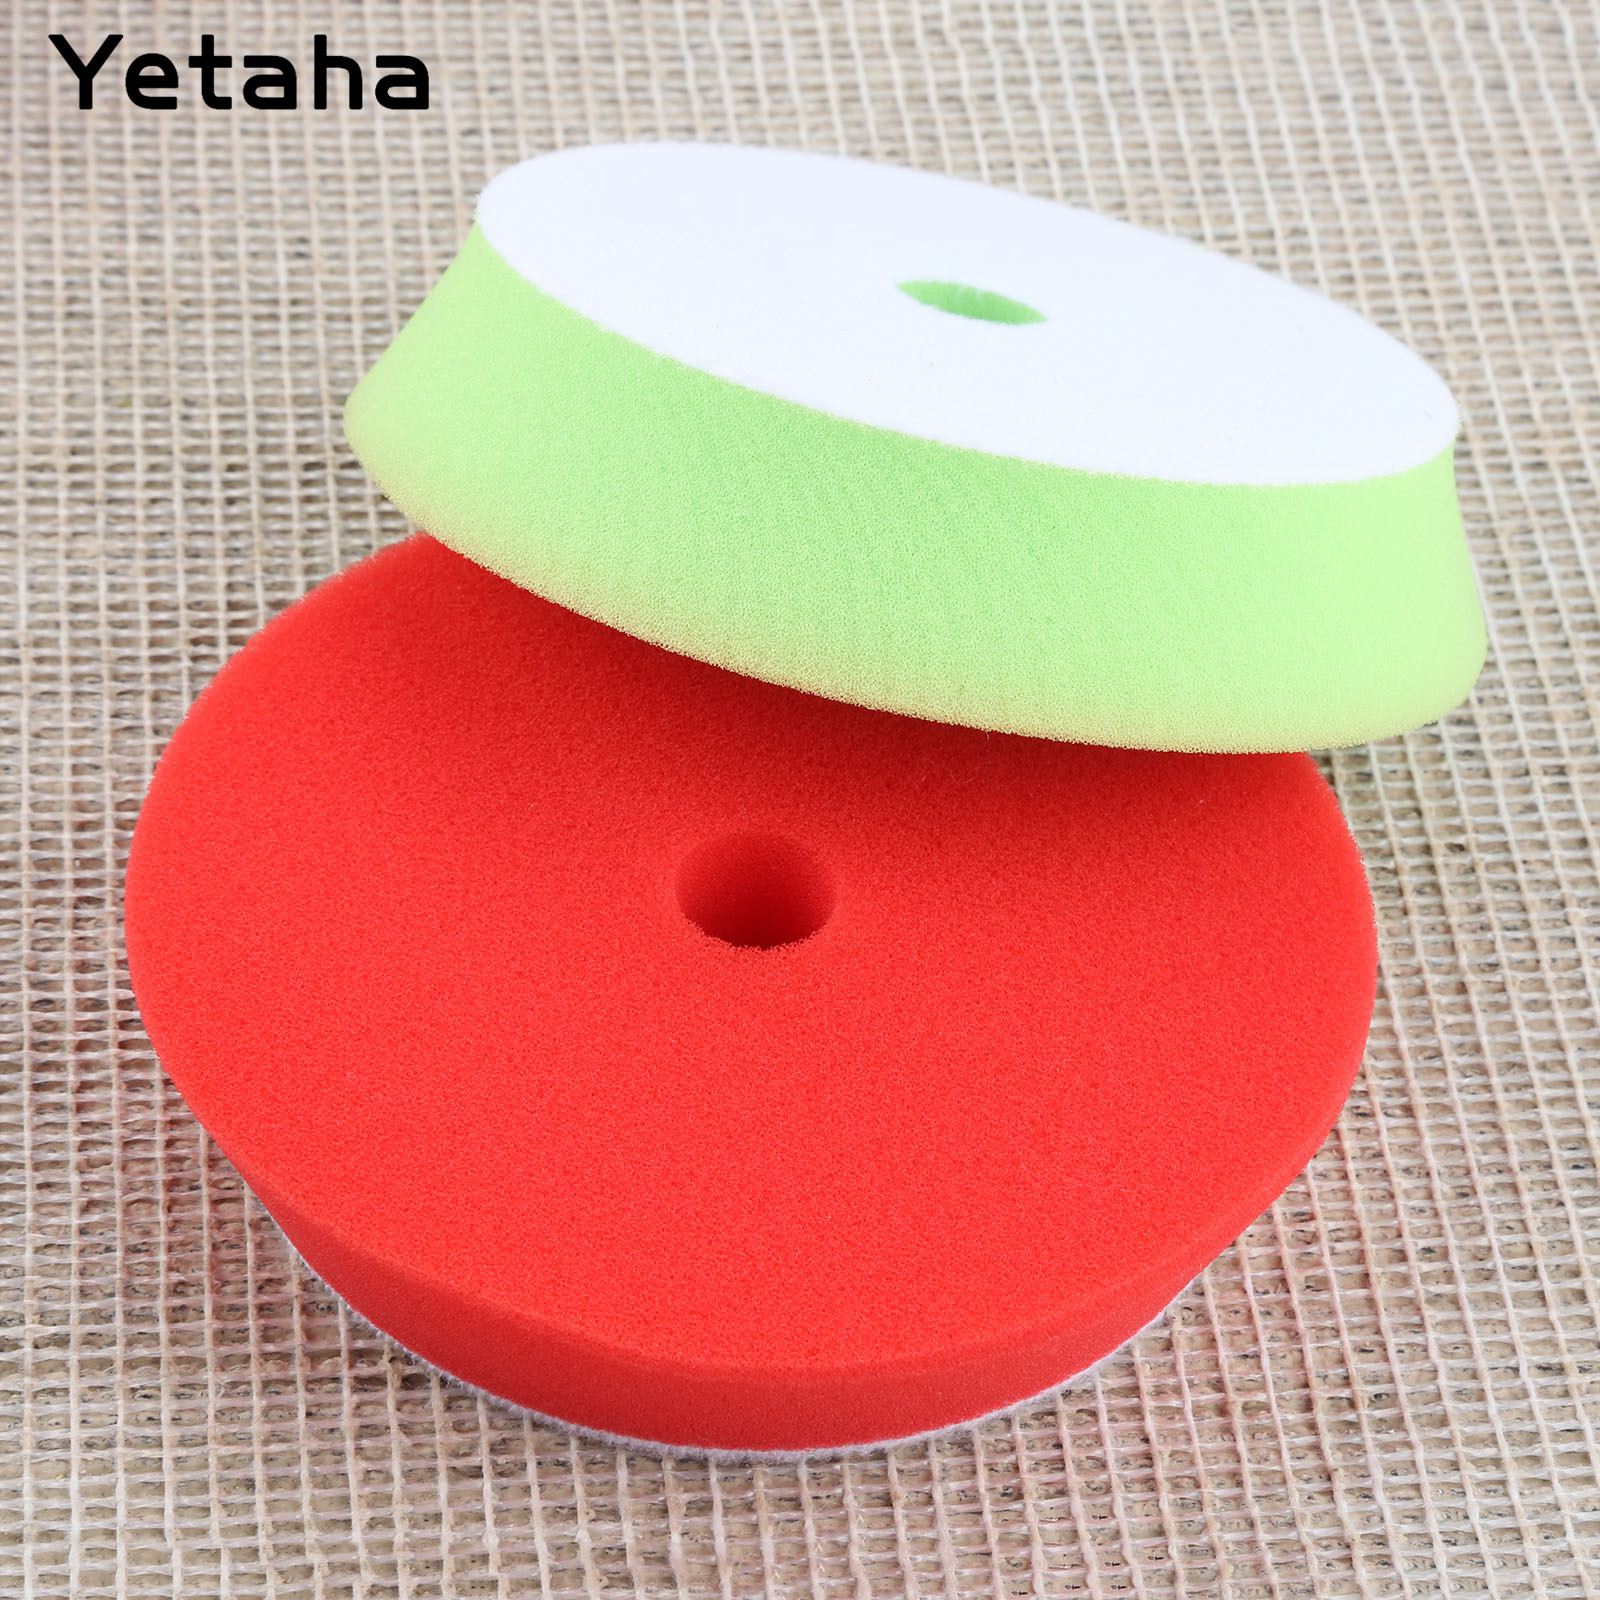 Image 3 - Yetaha 5Pcs 6inch 150mm Car Polishing Buffing Sponge Pads Set Car Wash For Car Polisher Cleaning Detailing Polishing Tool-in Sponges, Cloths & Brushes from Automobiles & Motorcycles